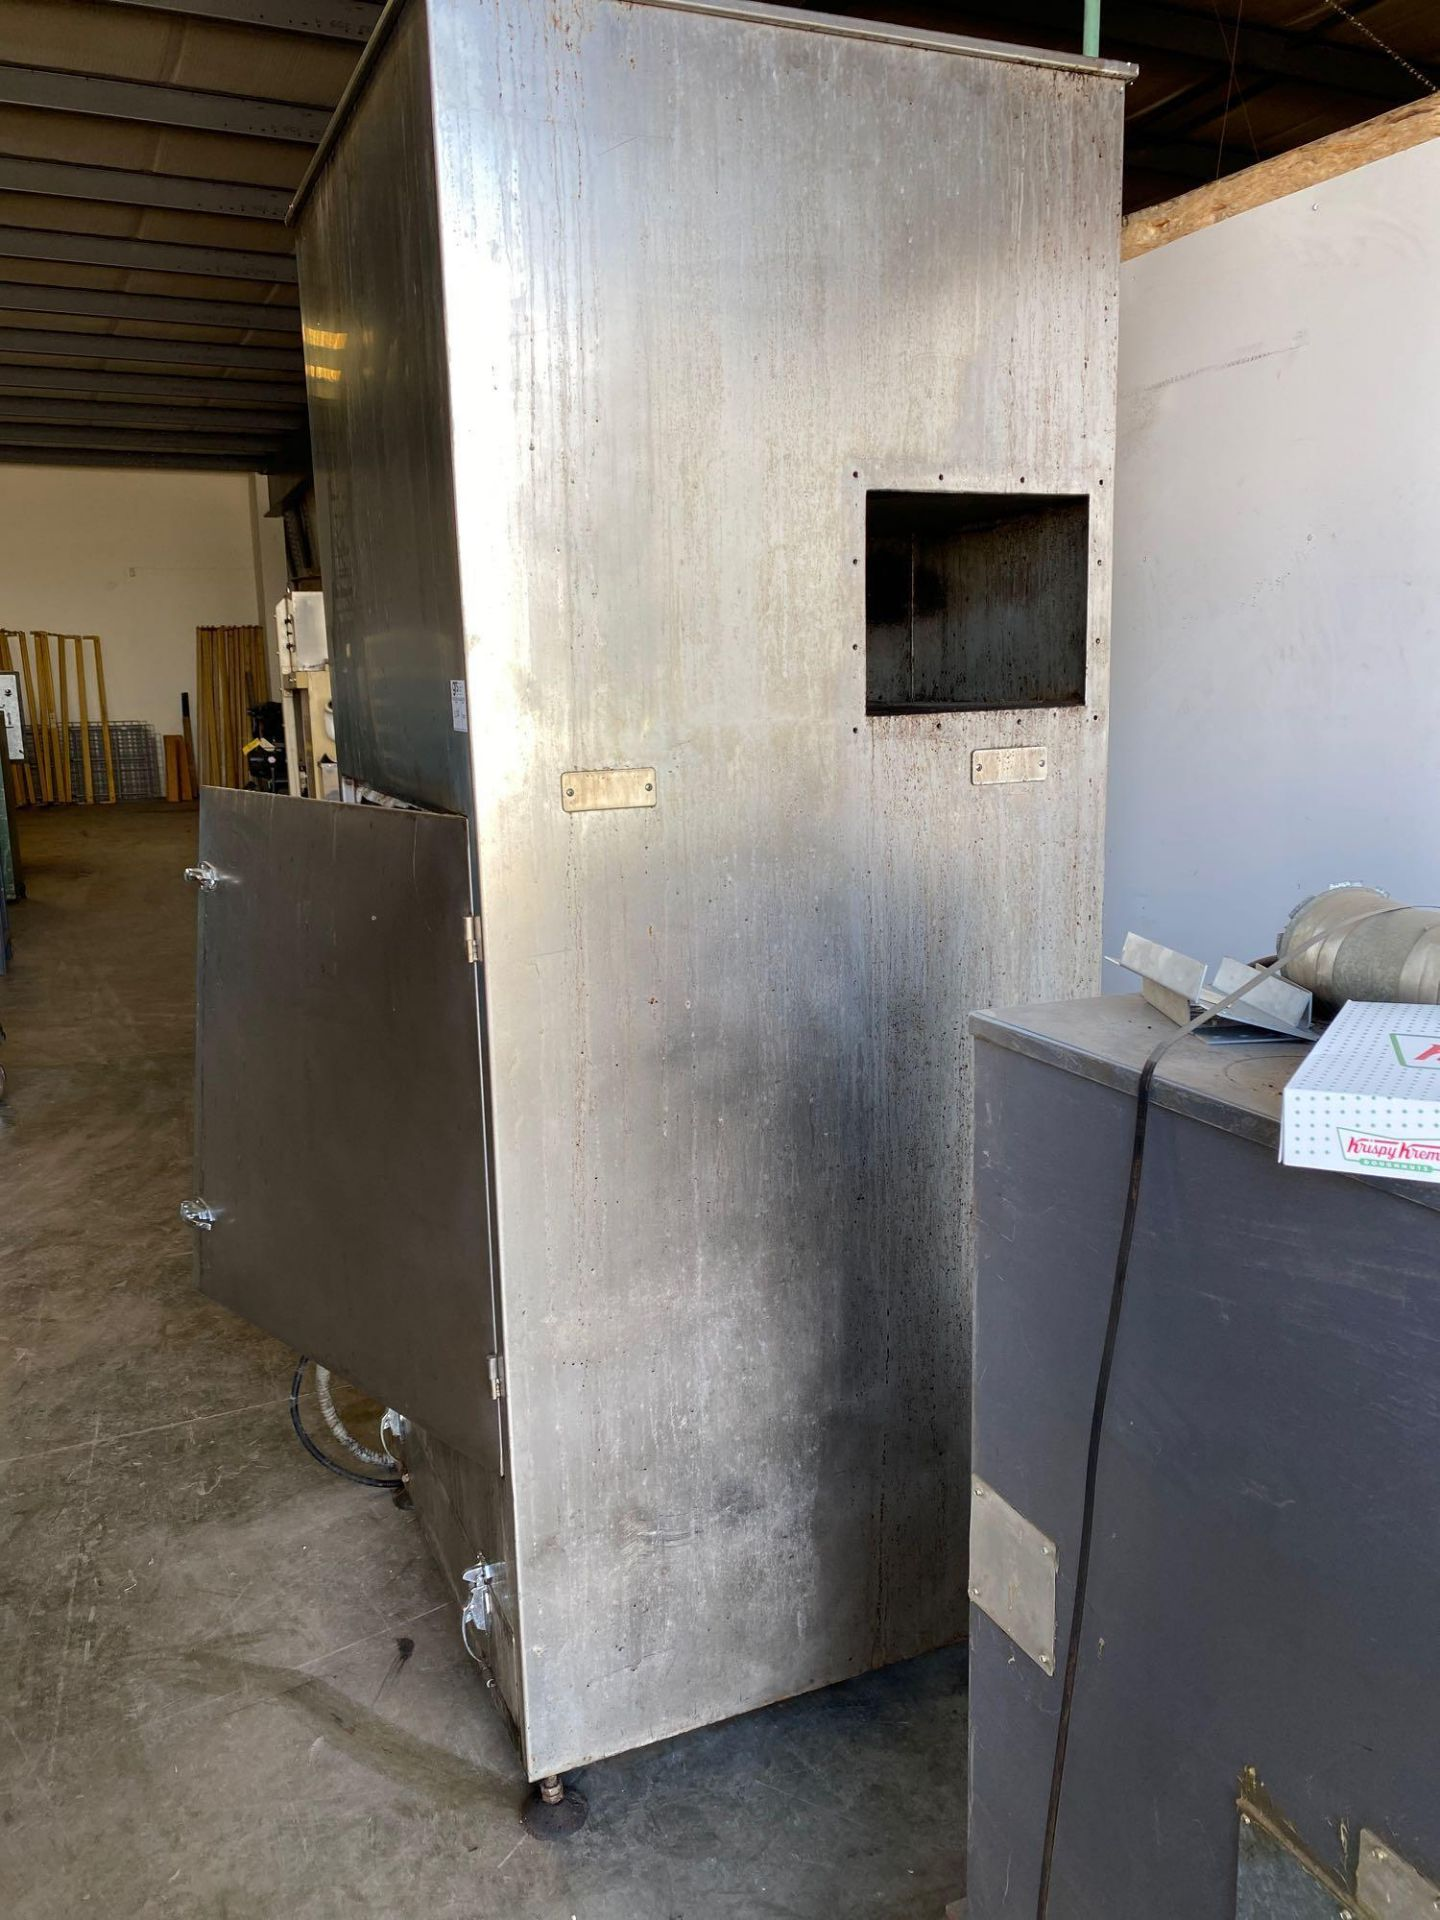 Air Exhaust Dust Collection Cabinet - Goes with 555C - Image 4 of 6